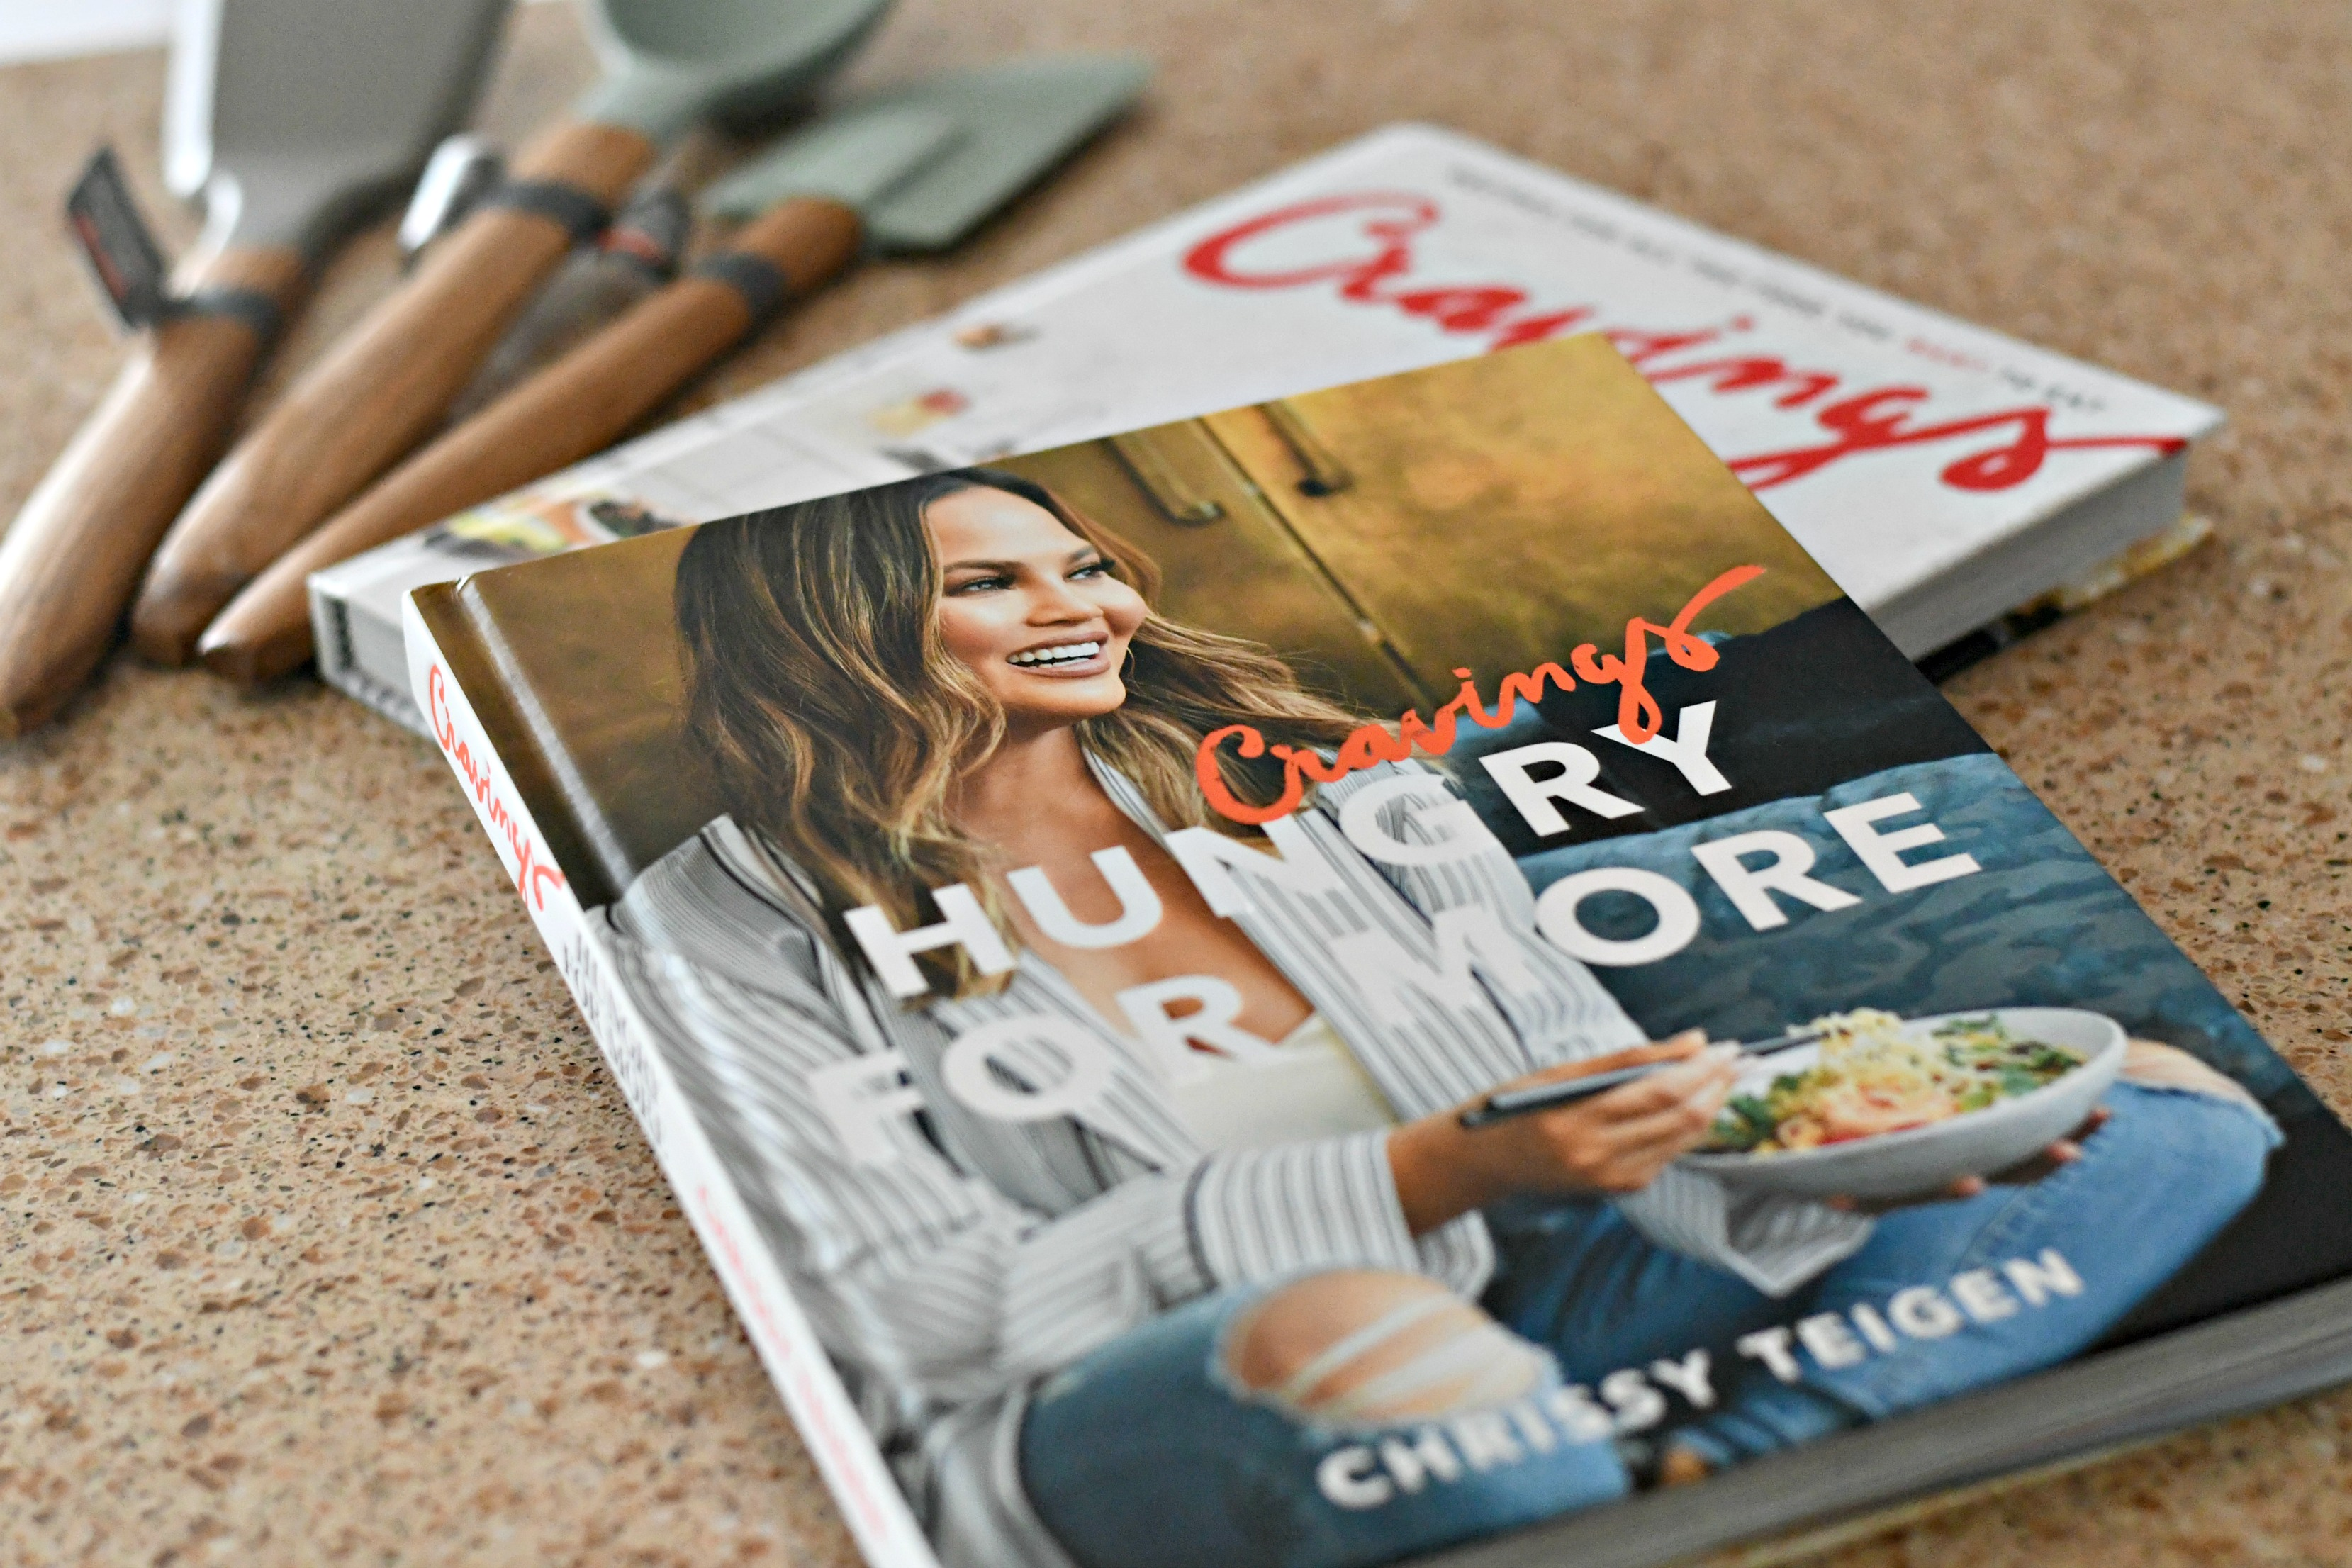 Cravings: Hungry for More Cookbook by Chrissy Teigen – the cookbook